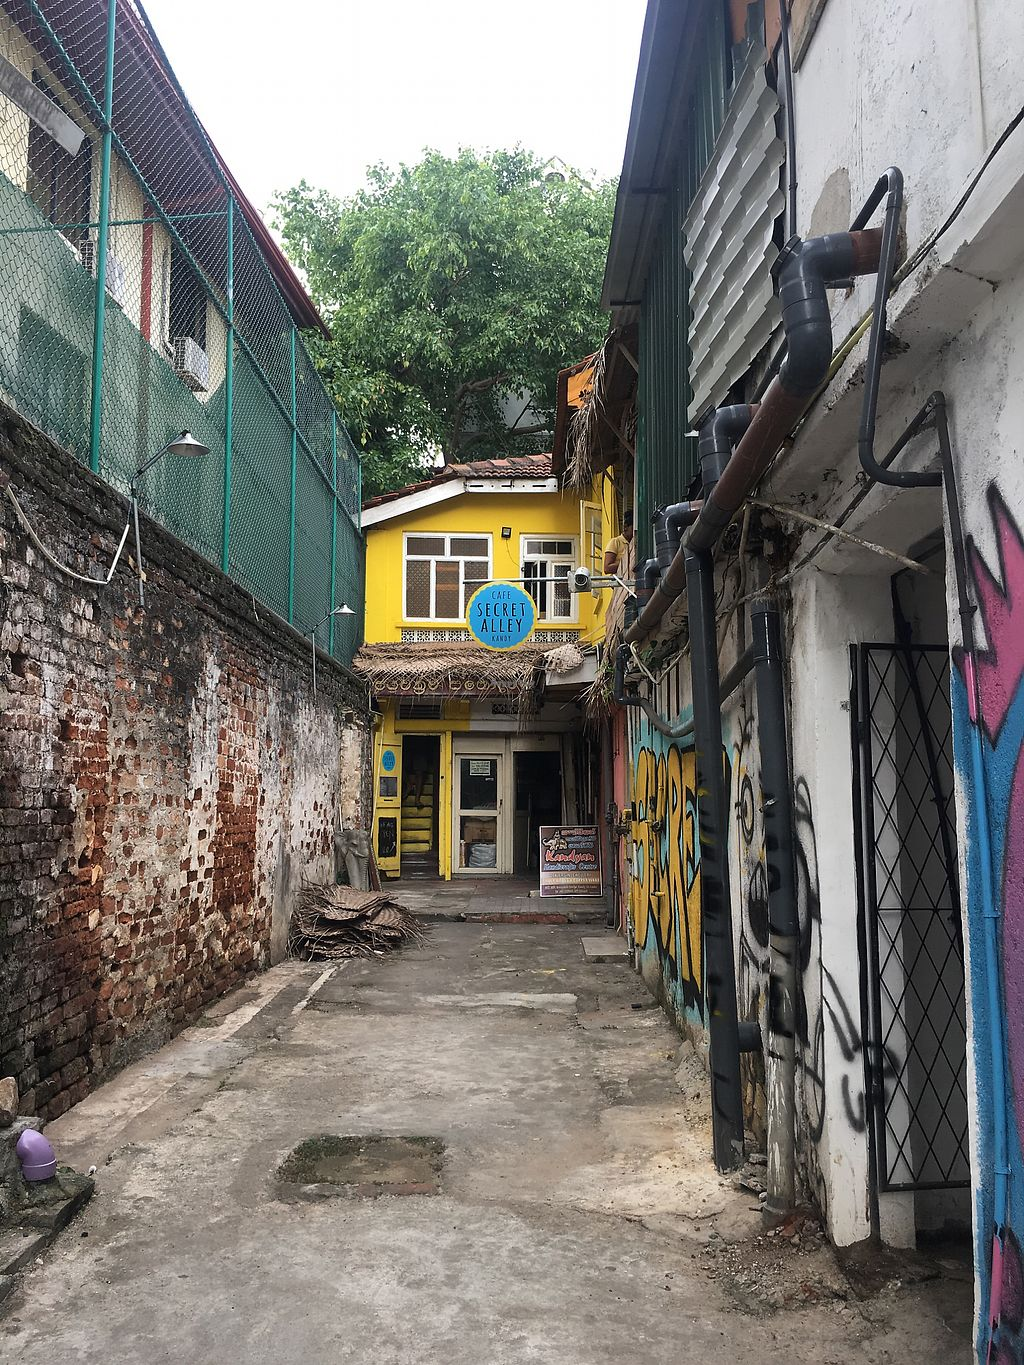 """Photo of Cafe Secret Alley  by <a href=""""/members/profile/rhebay"""">rhebay</a> <br/>entrance <br/> July 27, 2017  - <a href='/contact/abuse/image/92904/285356'>Report</a>"""